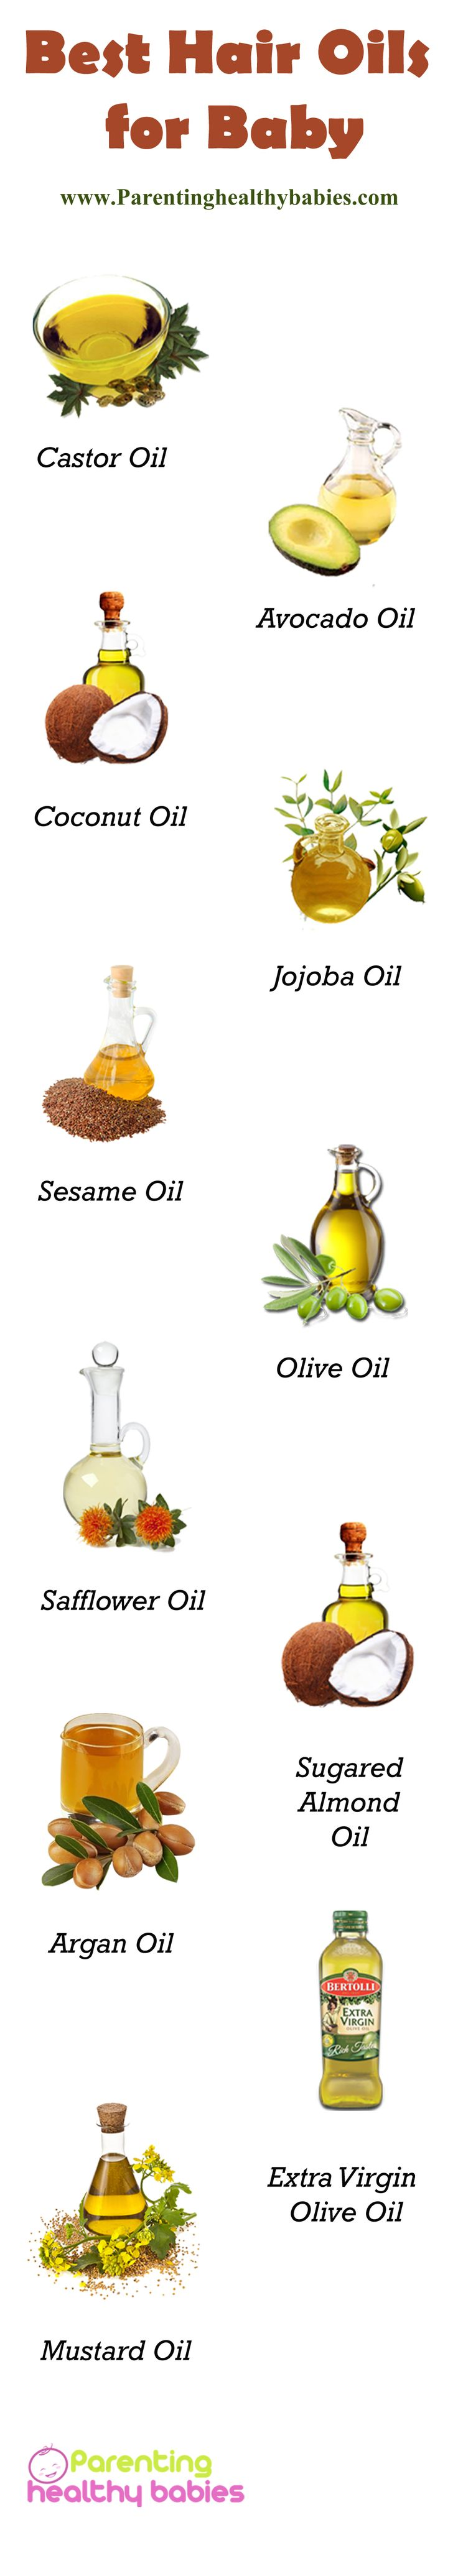 Top 11 Oils for Baby Hair Growth